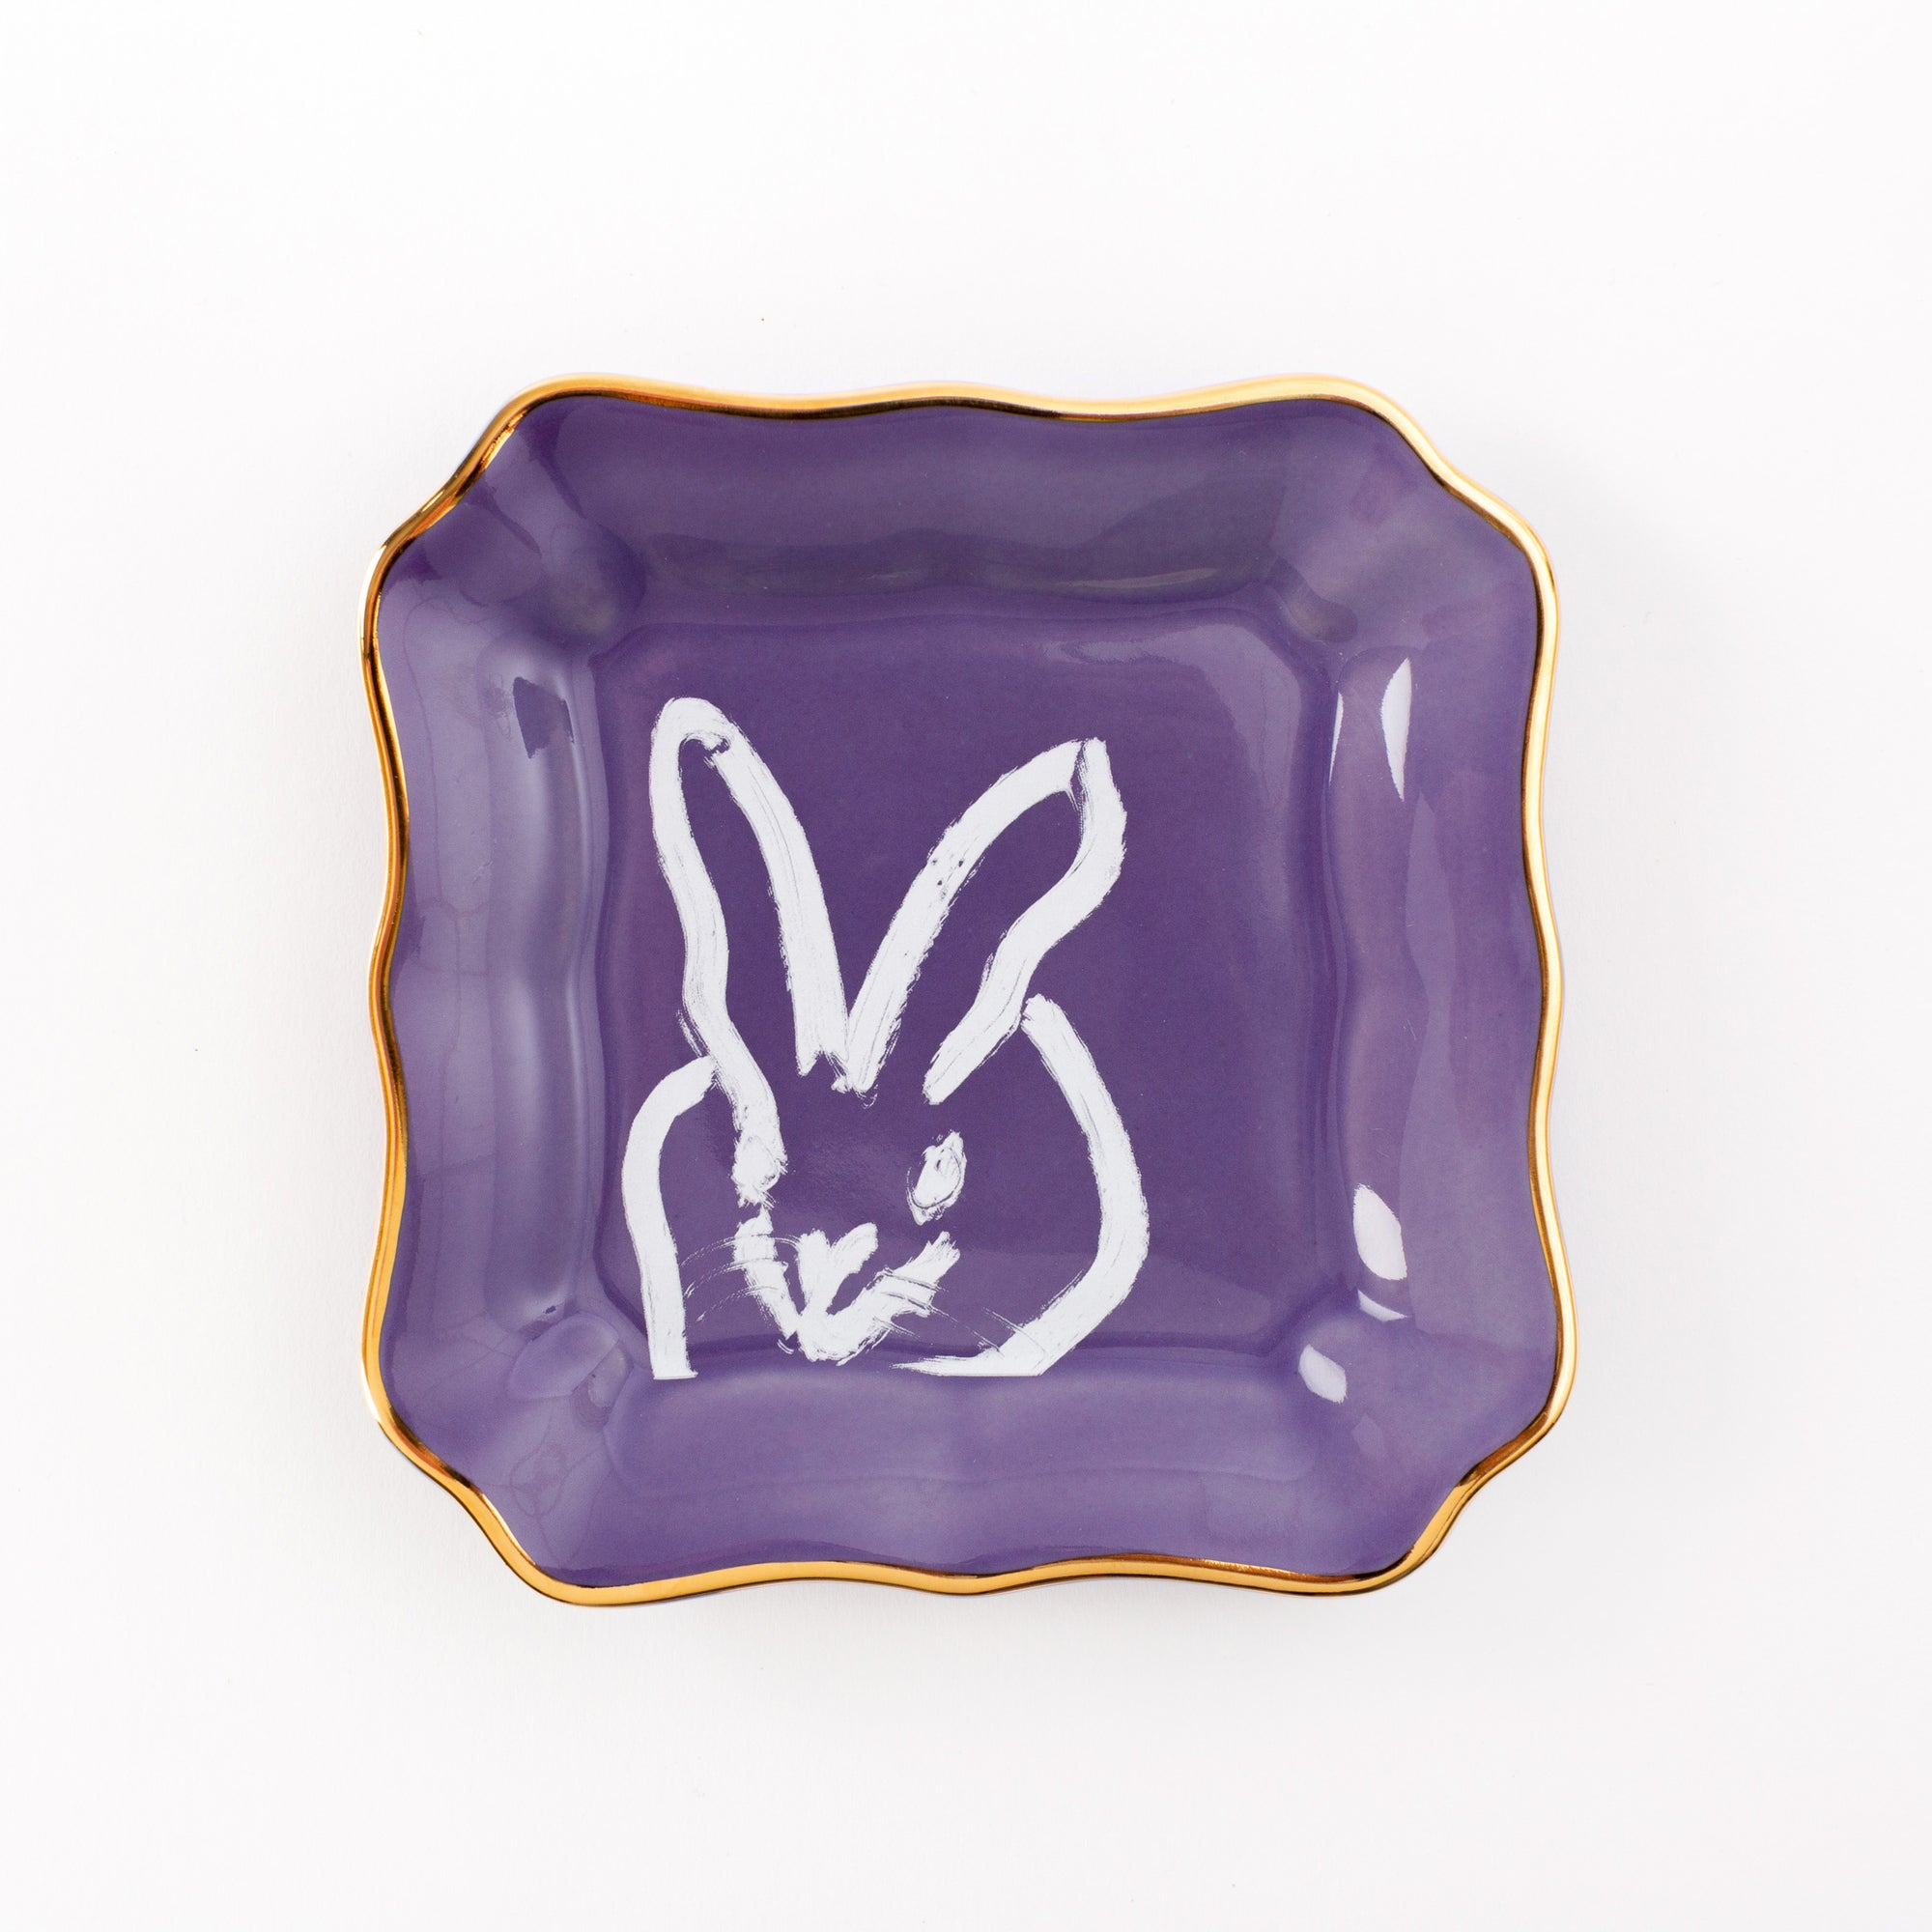 Bunny Portrait Plate - Lilac with Gold Rim